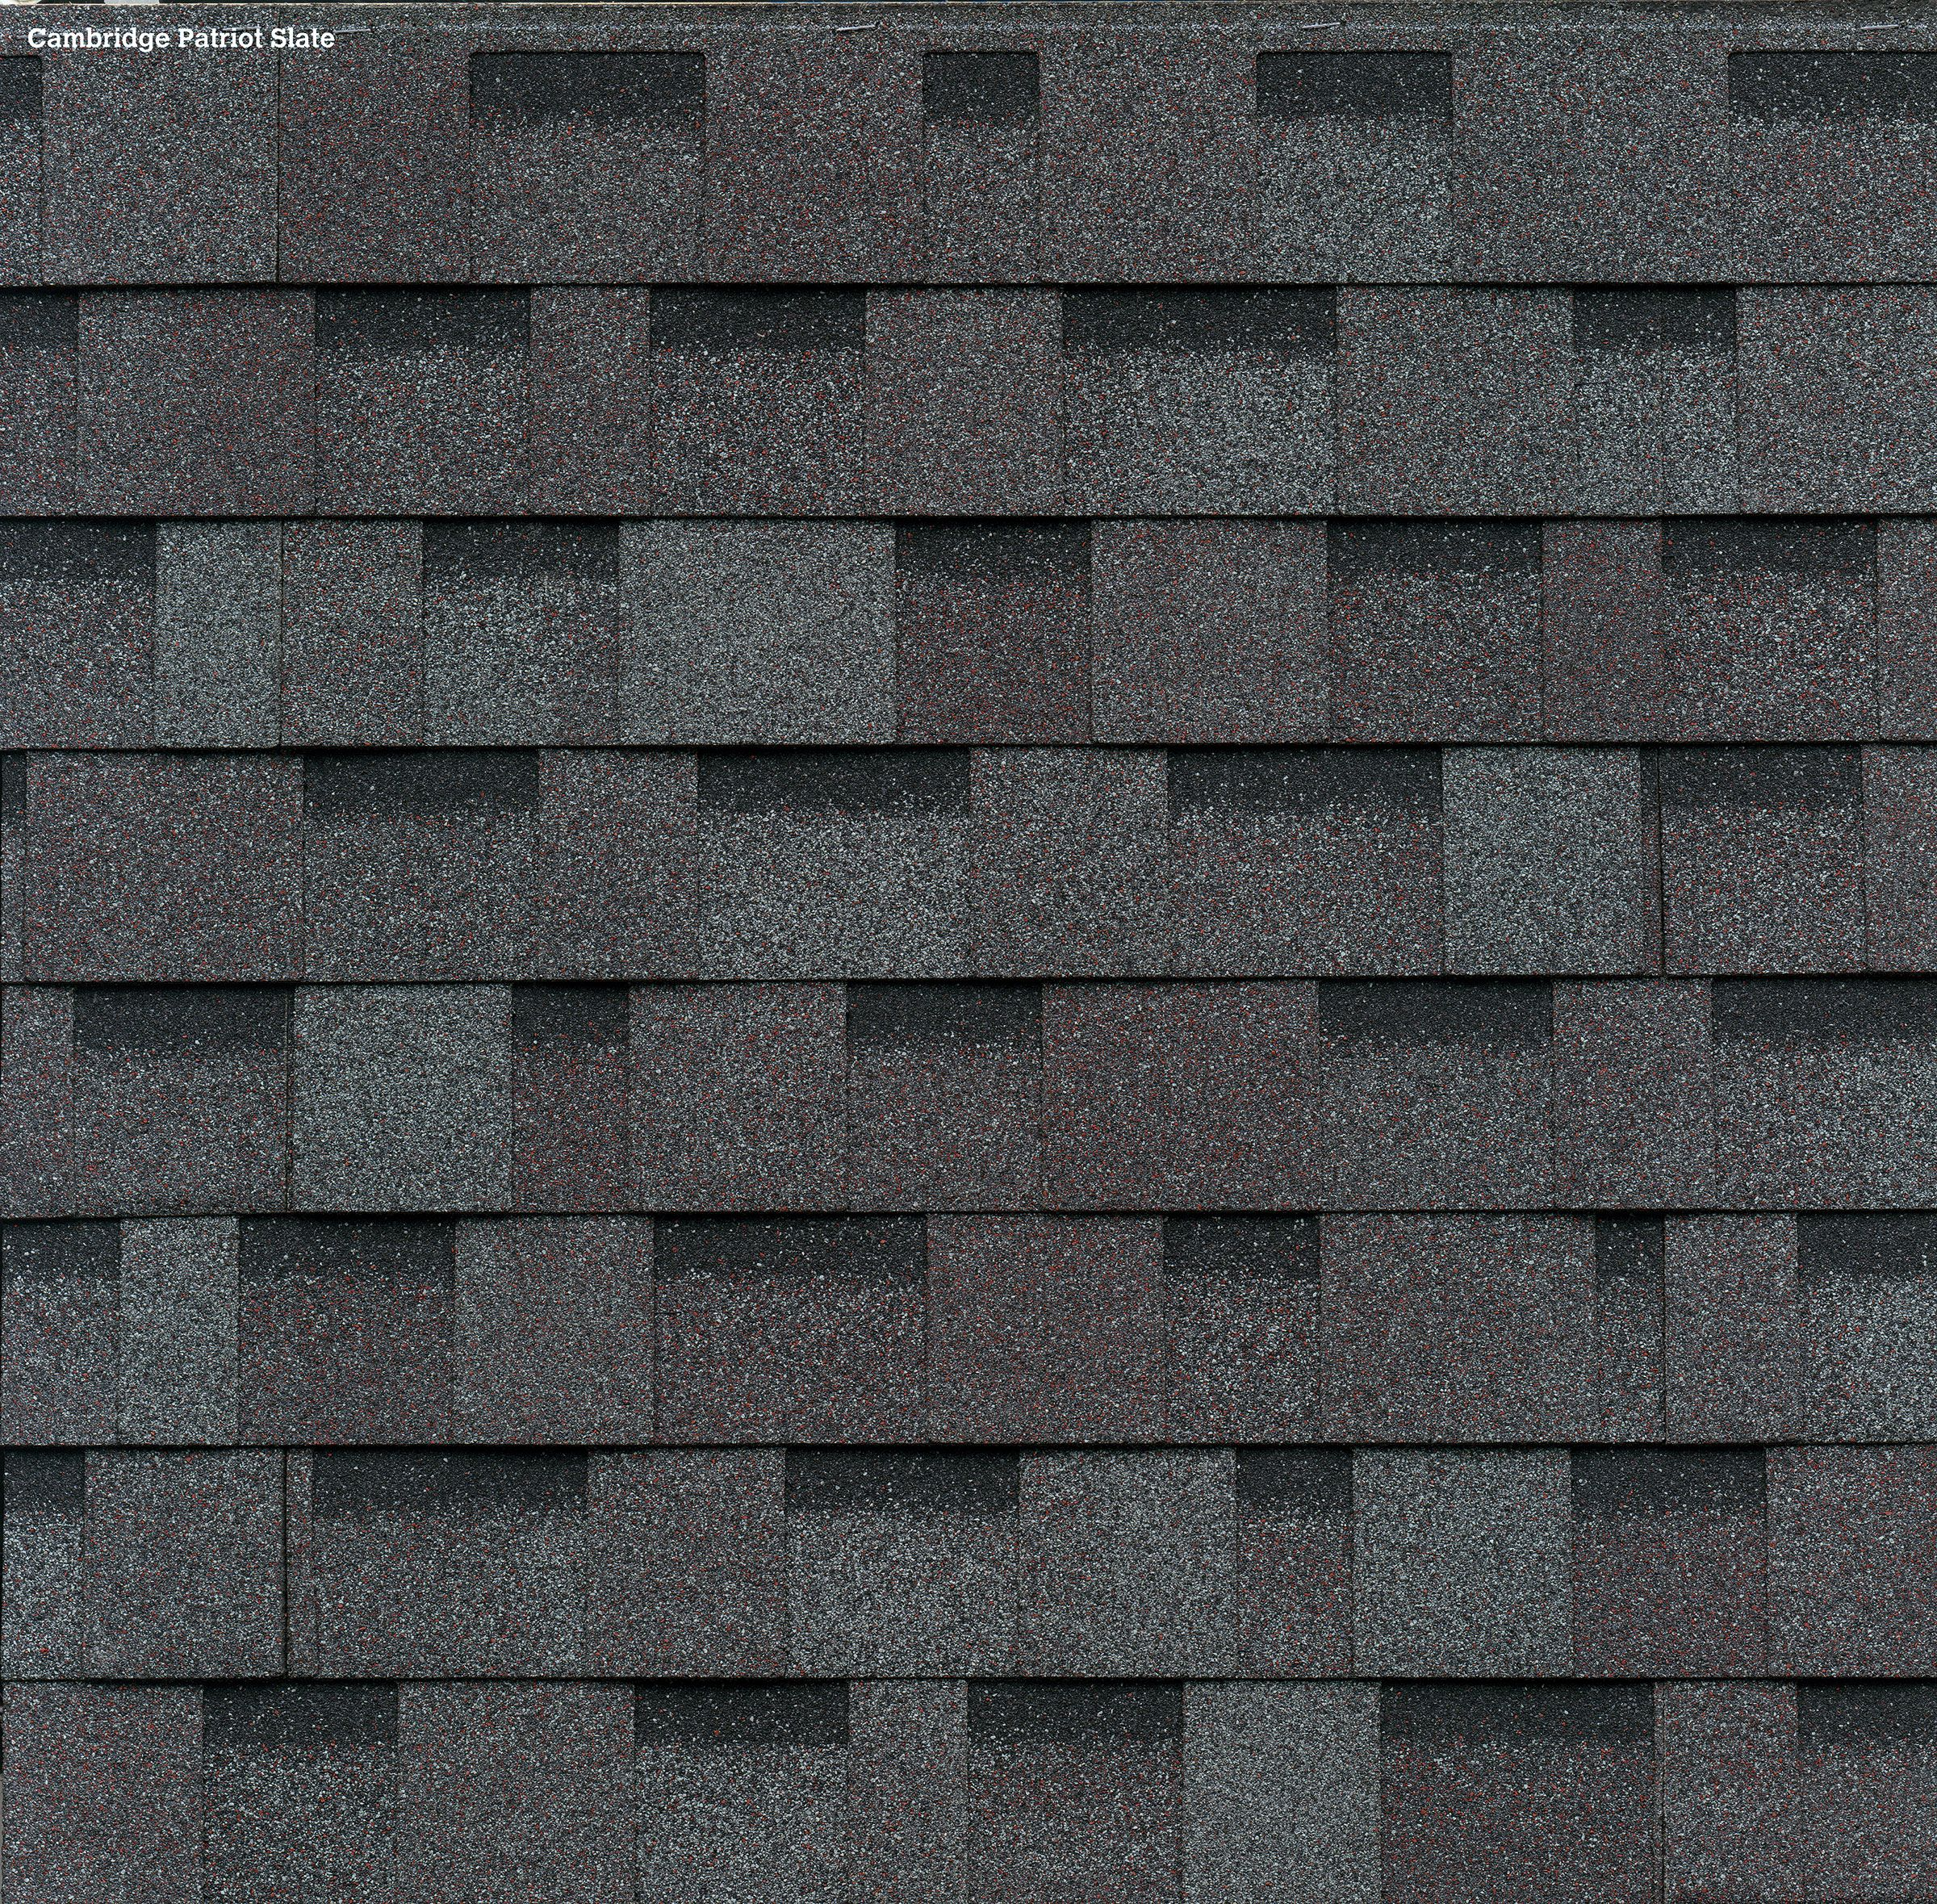 Iko Cambridge Patriot Slate Swatch In 2020 Architectural Shingles Shingling Residential Roofing Shingles